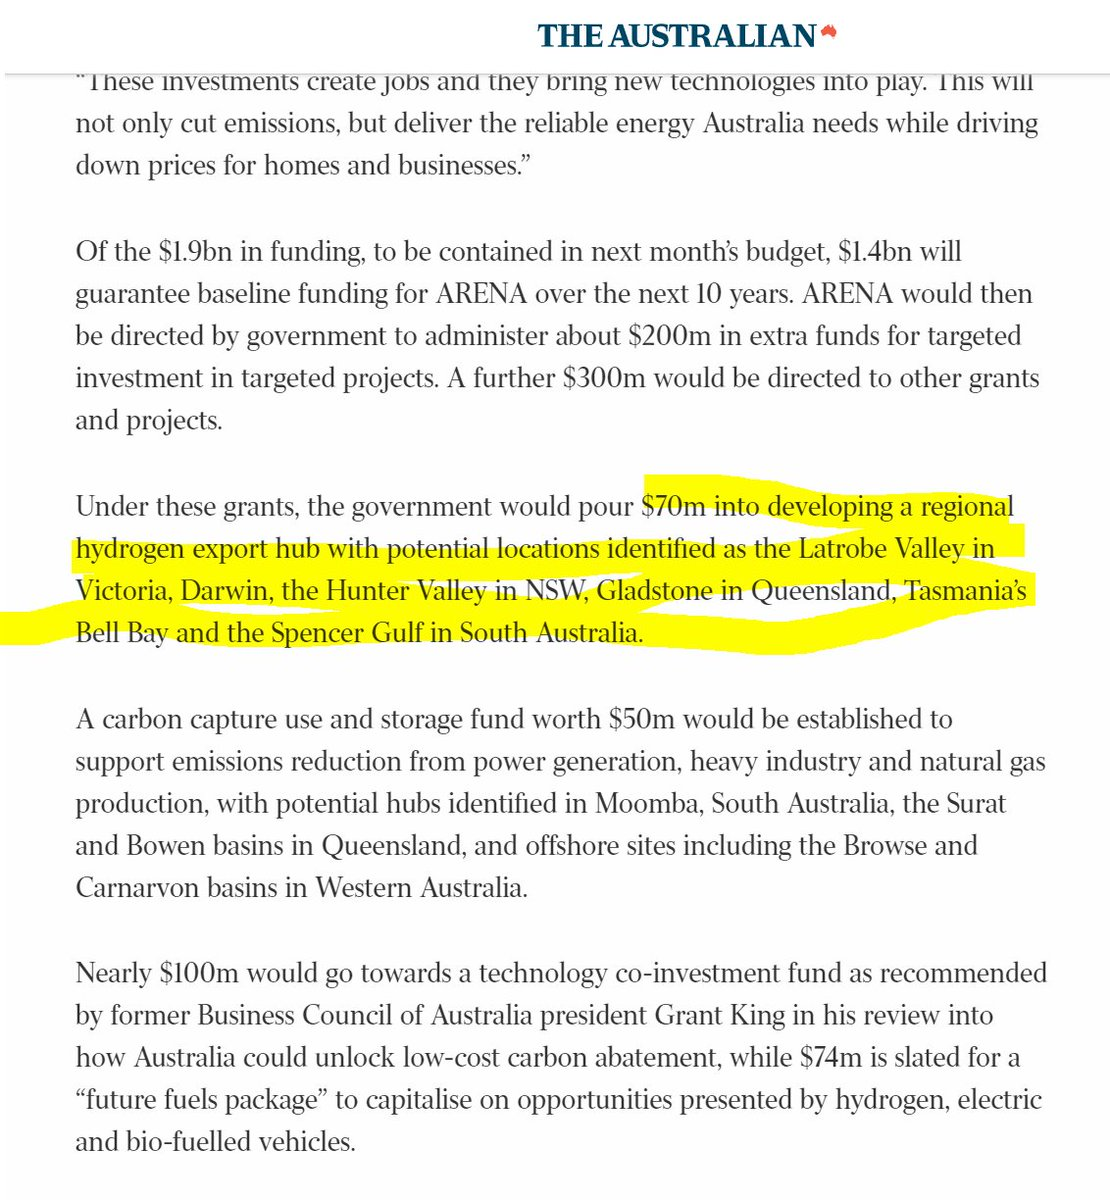 5) To do this there is $70m into developing a regional hydrogen export hub Potential locations are either brown coal, black coal or gas hubs (exception of Tas Bell Bay)!Clearly they want to use 'clean hydrogen' to save fossil fuels. https://www.theaustralian.com.au/nation/politics/power-to-change-renewable-energy-rules/news-story/c51c8a60d357d12c1ed496a1b5ecc121